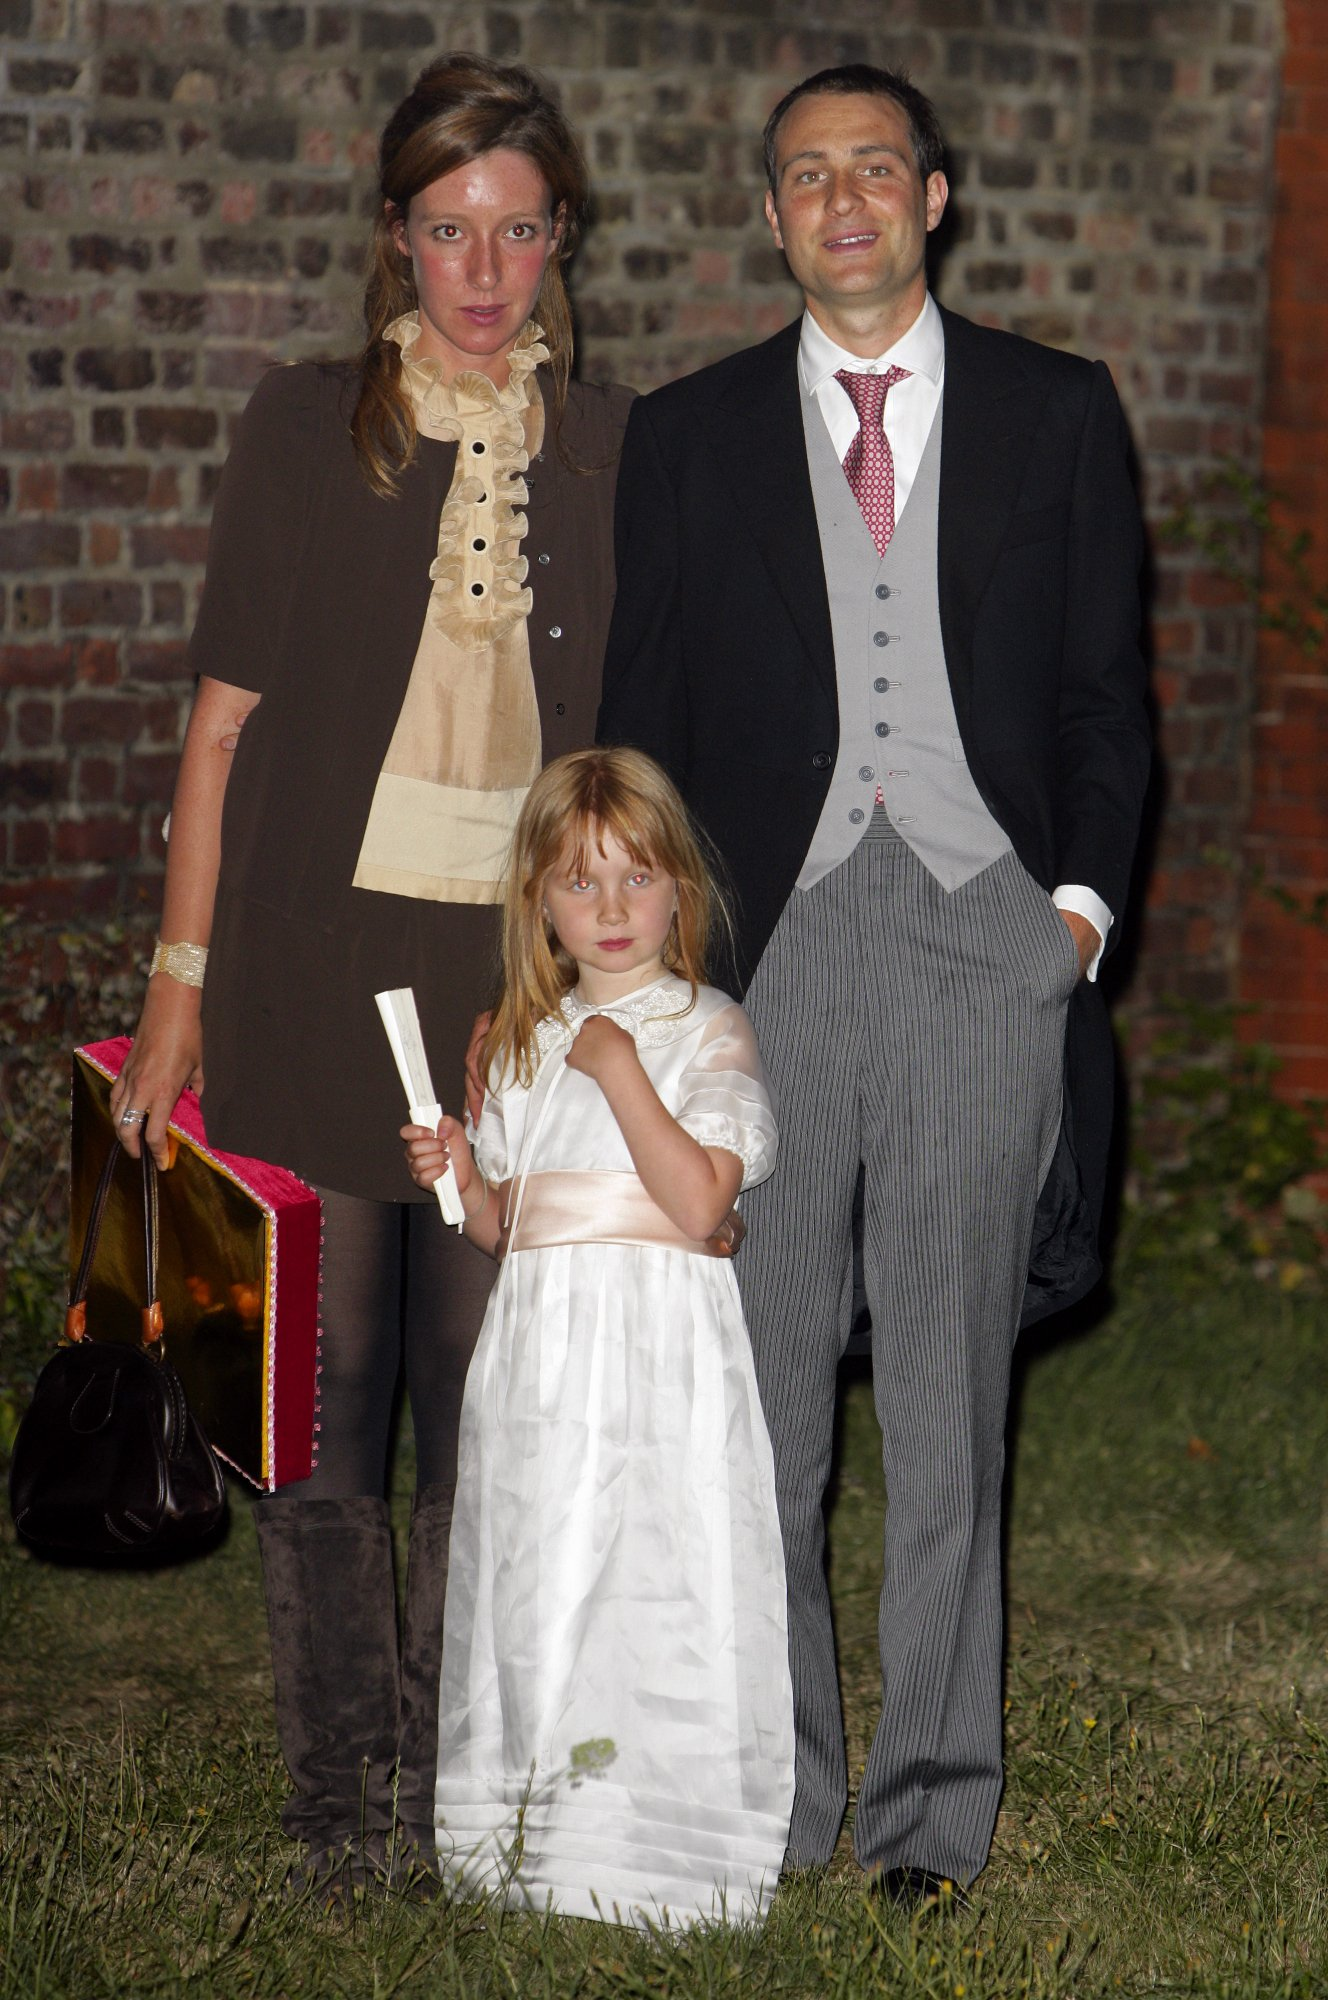 Iris Annabel com os pais, Kate Rothschild e Ben Goldsmith, em 2009 © Indigo/Getty Images